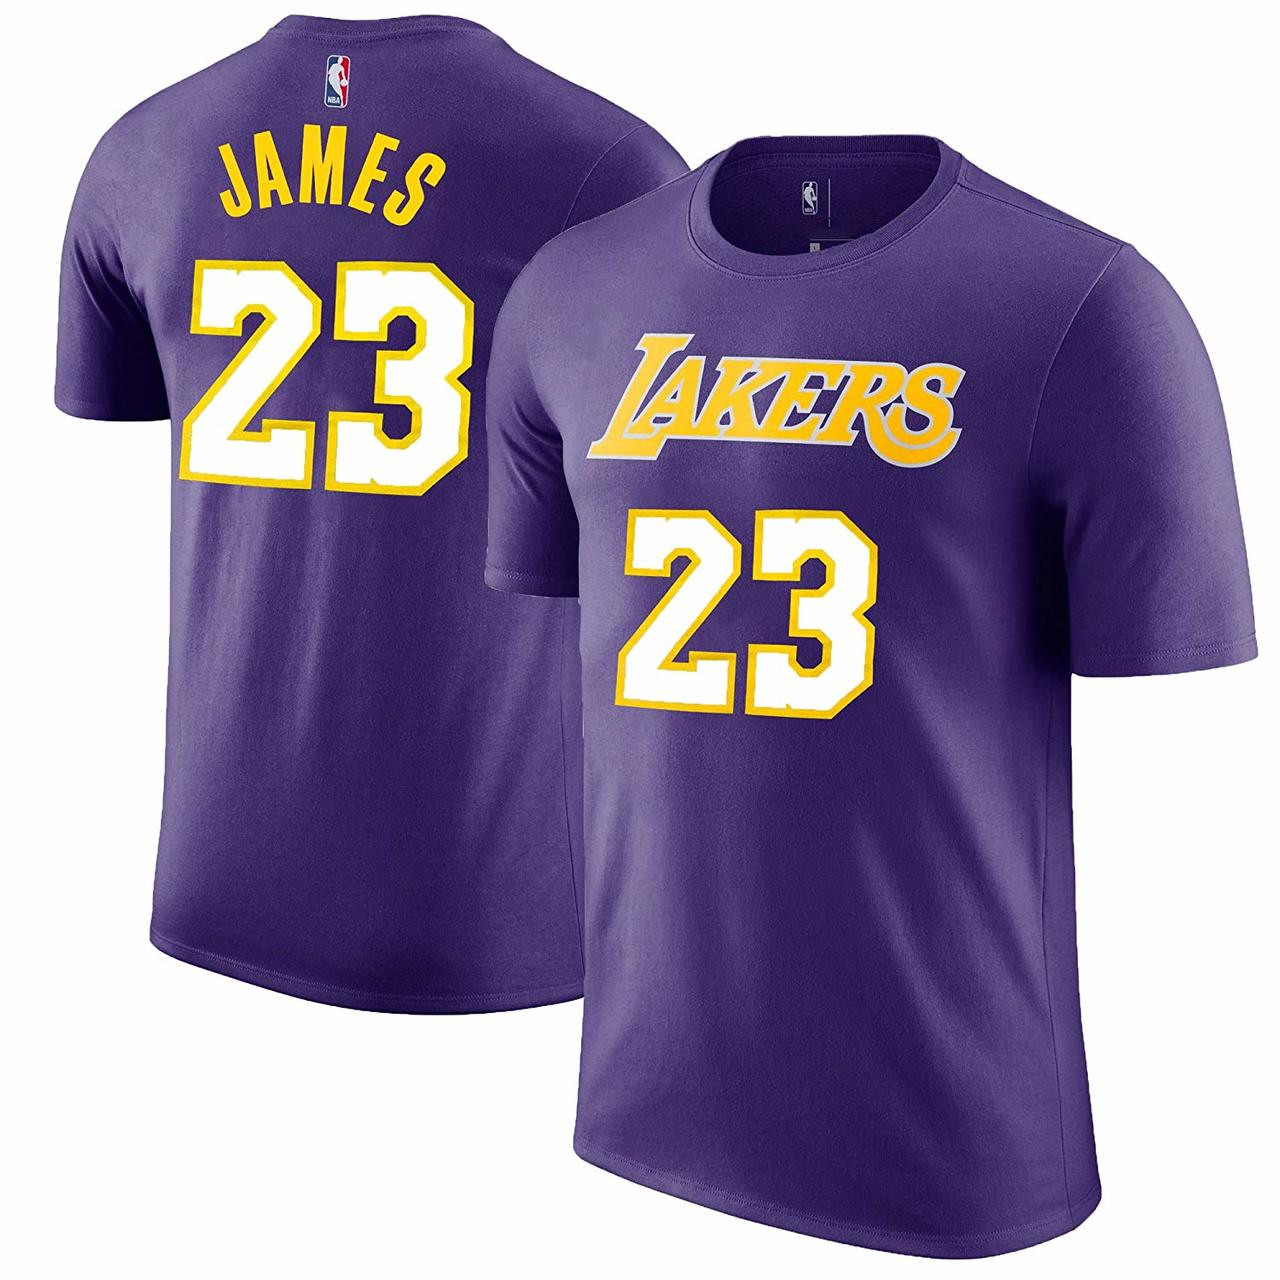 LeBron James Los Angeles Lakers  23 Purple NBA Youth Name   Number T-shirt.  OuterStuff. Image 1 05e6e4411